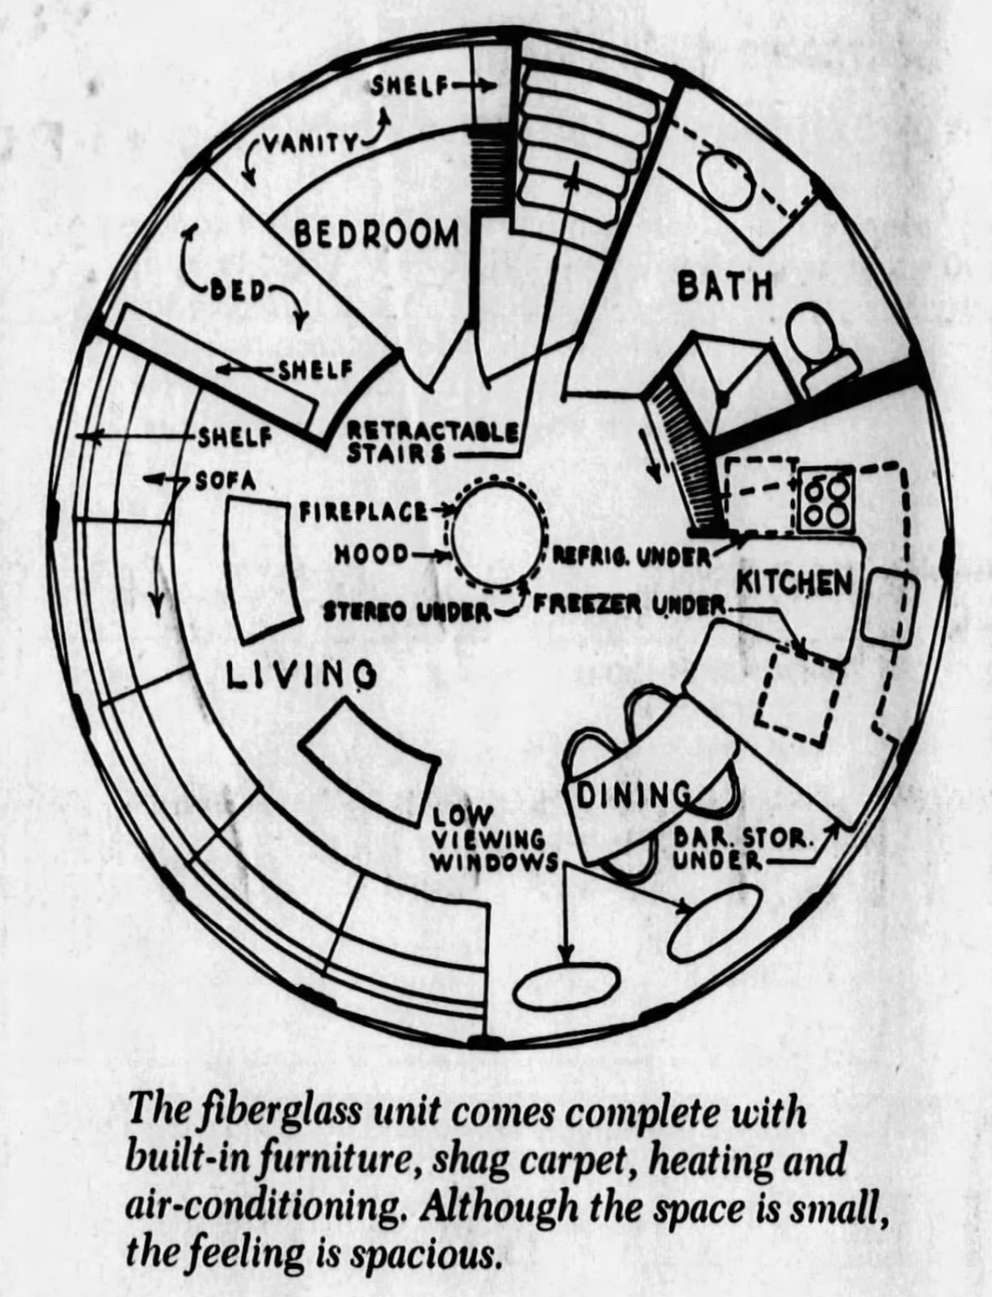 The December 6, 1970 edition of the St. Petersburg Times ran a story about Futuro houses after a dealership popped up in Clearwater. The story included a diagram depicting the pre-furnished model's interior.